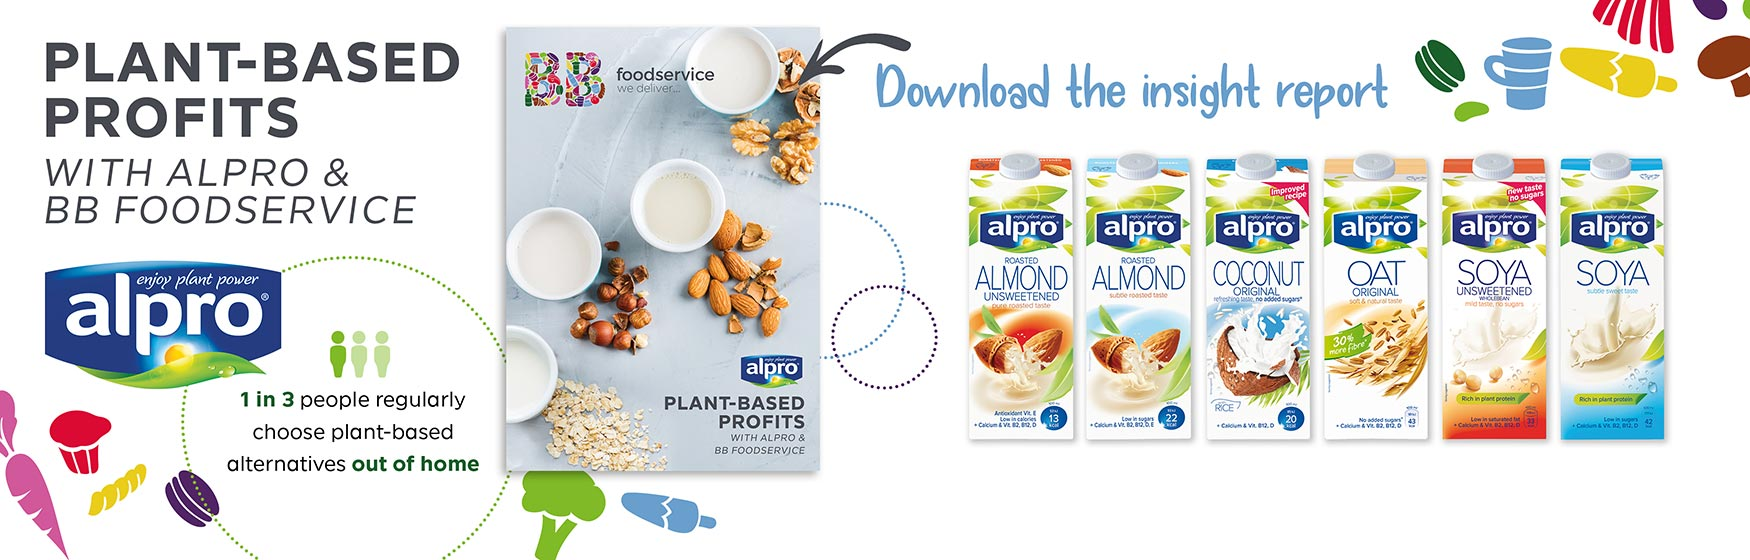 Plant-based profits with Alpro & BB Foodservice